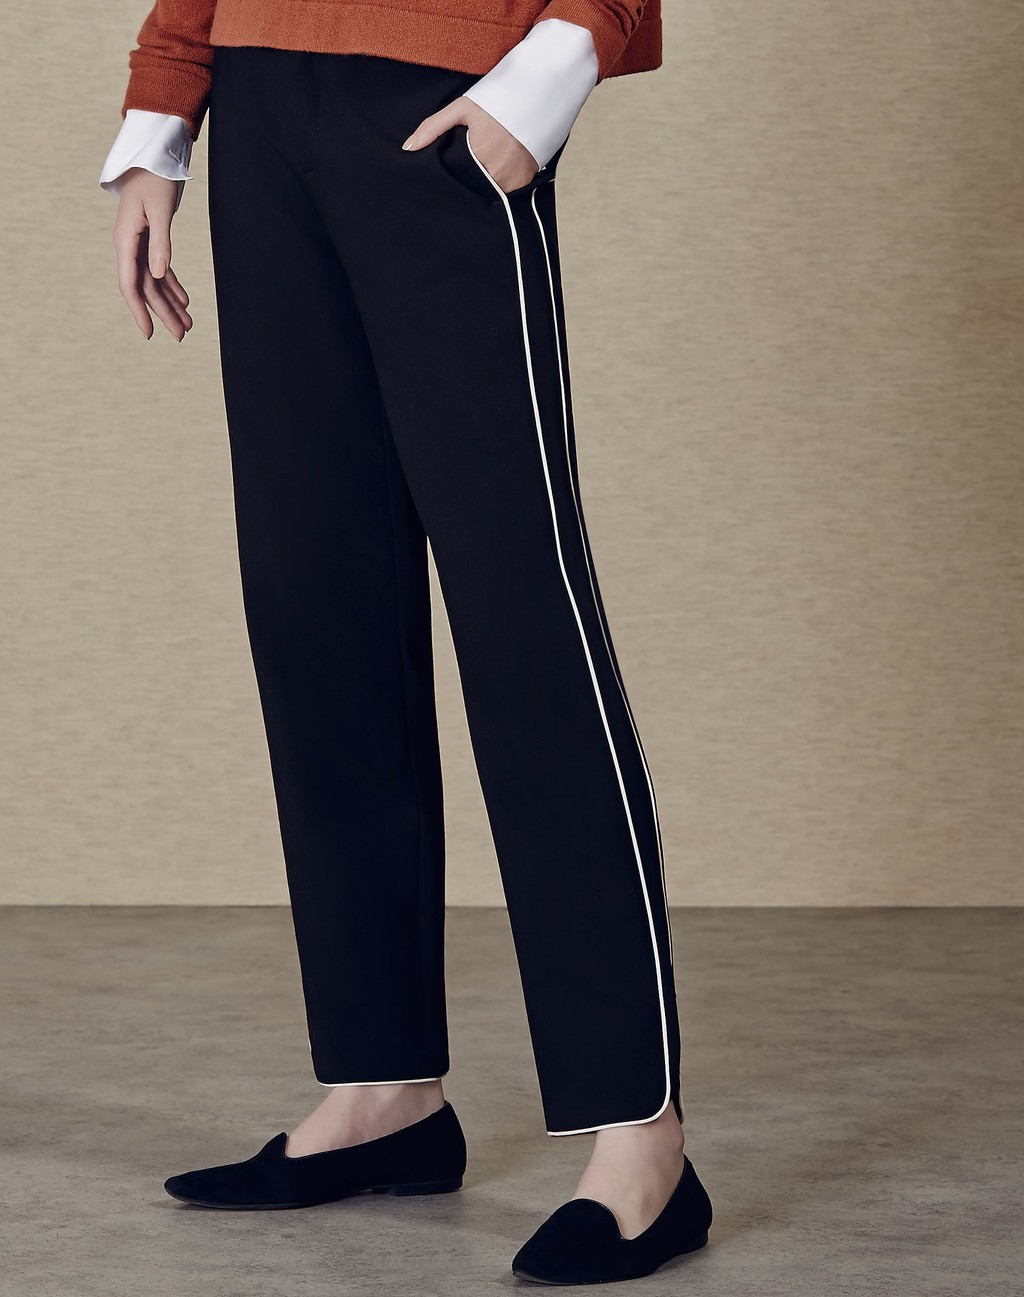 Piped Slim Trouser Black/White - length: standard; pattern: plain; waist: mid/regular rise; predominant colour: black; fibres: polyester/polyamide - 100%; texture group: crepes; fit: slim leg; pattern type: fabric; style: standard; occasions: creative work; season: a/w 2015; wardrobe: basic